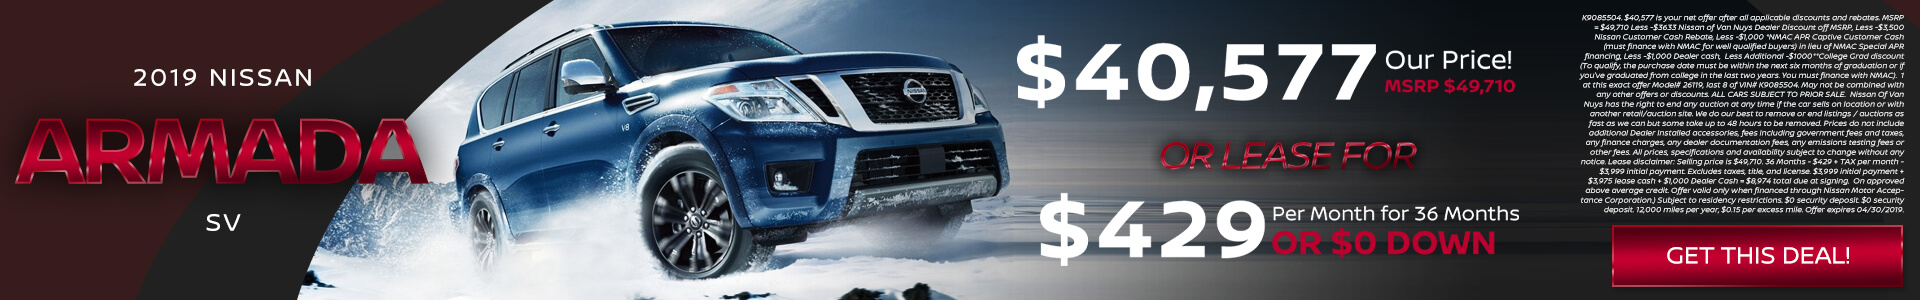 Nissan Armada $40,577 Purchase